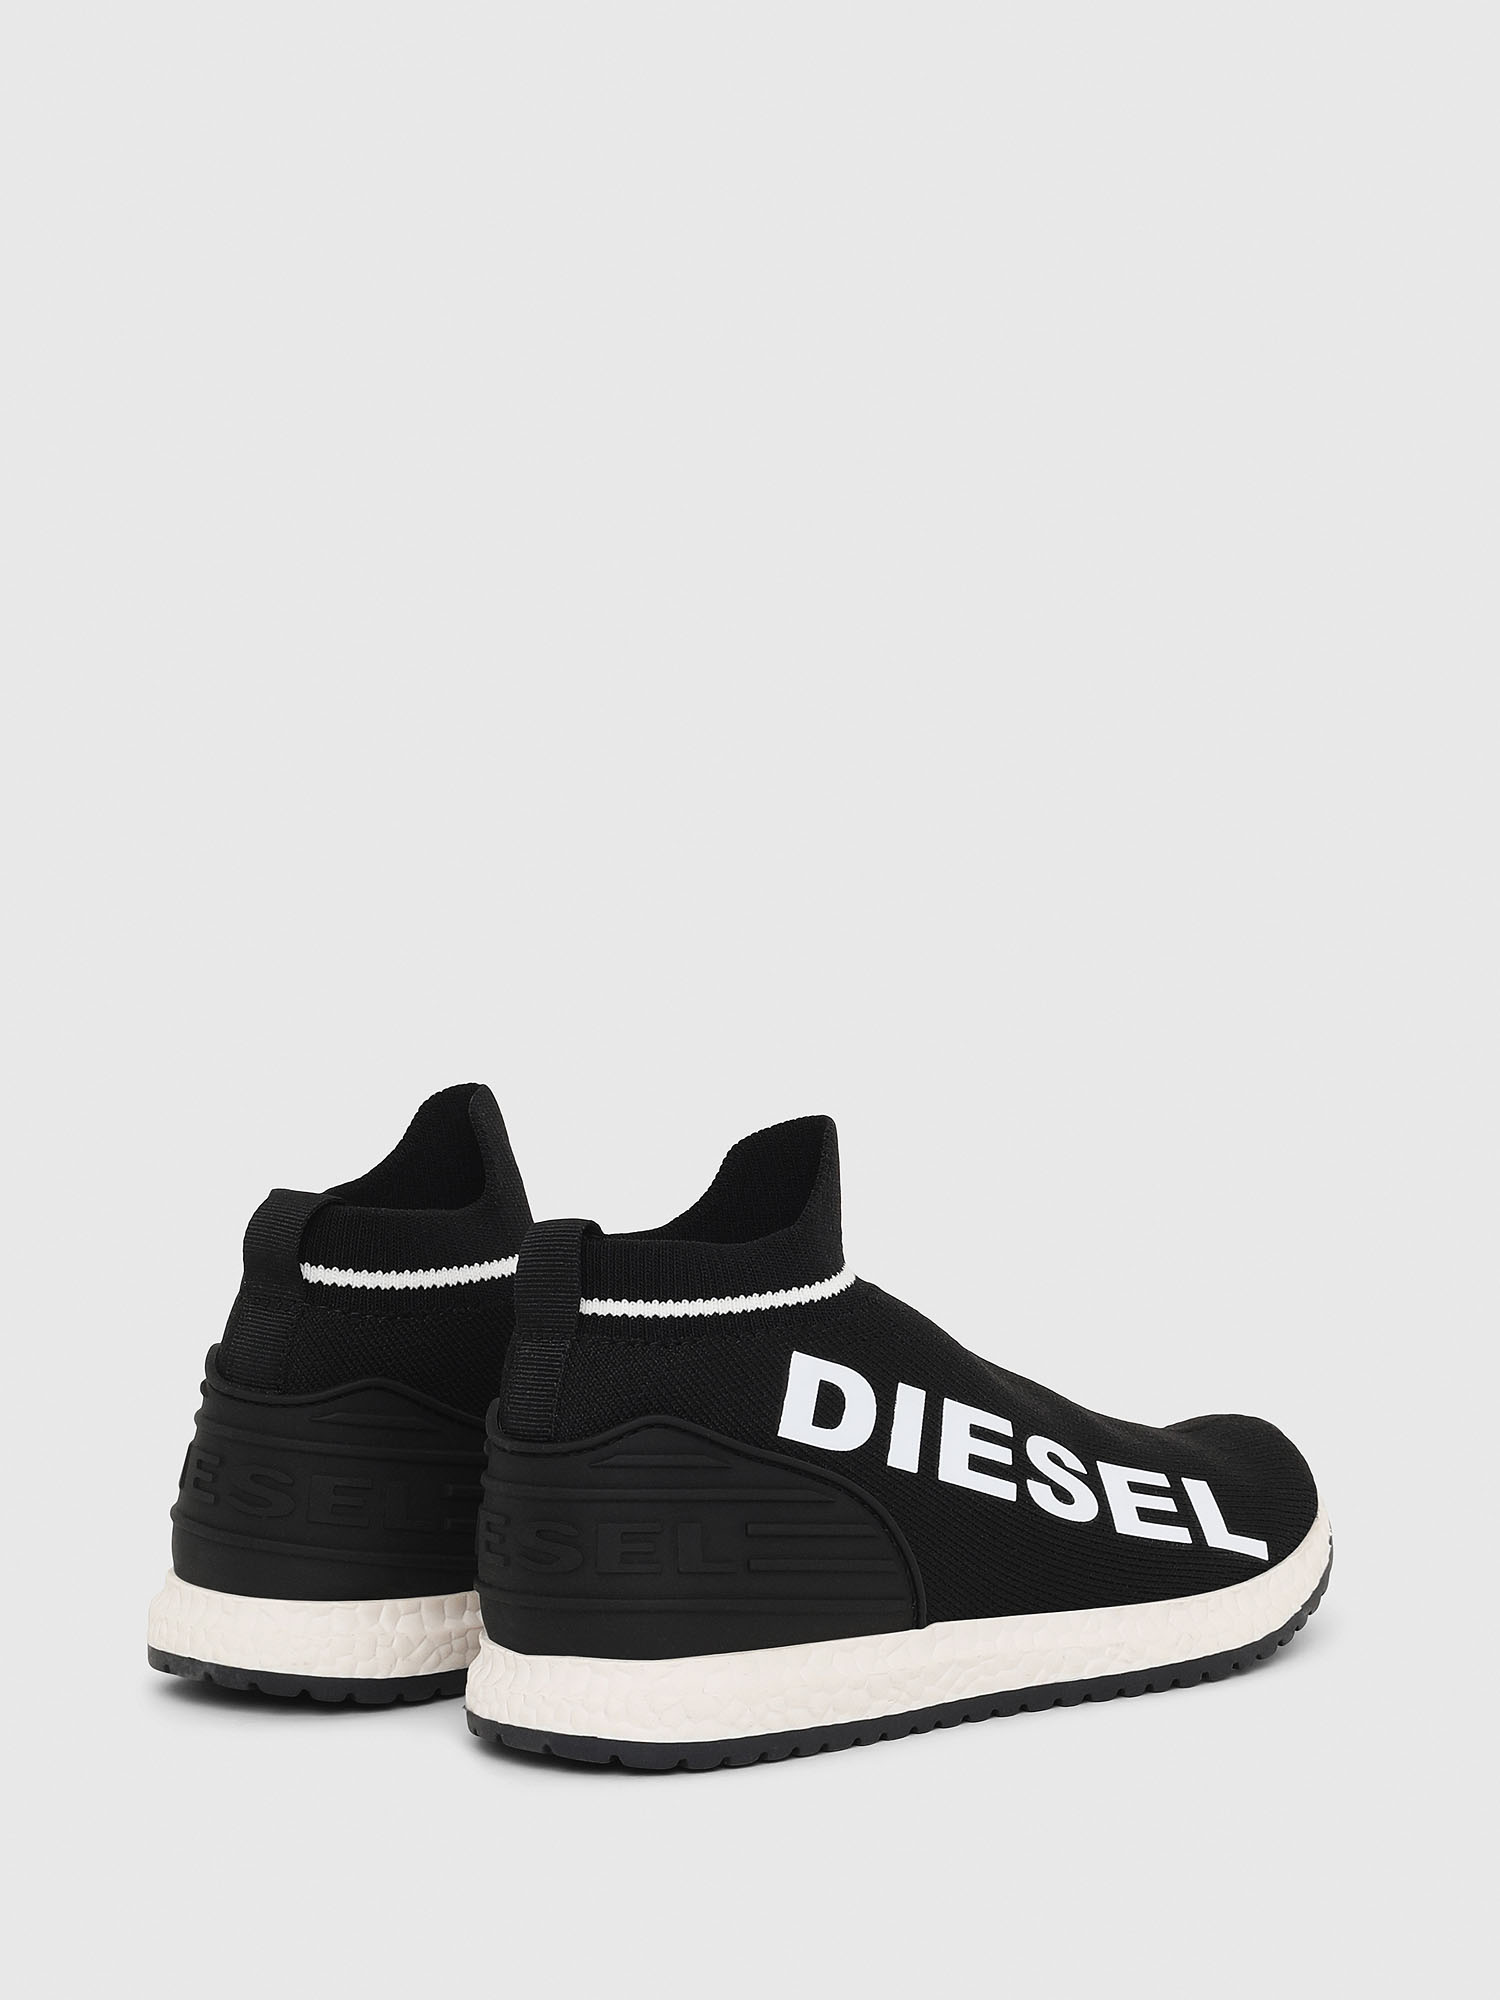 Diesel - SLIP ON 03 LOW SOCK,  - Footwear - Image 2